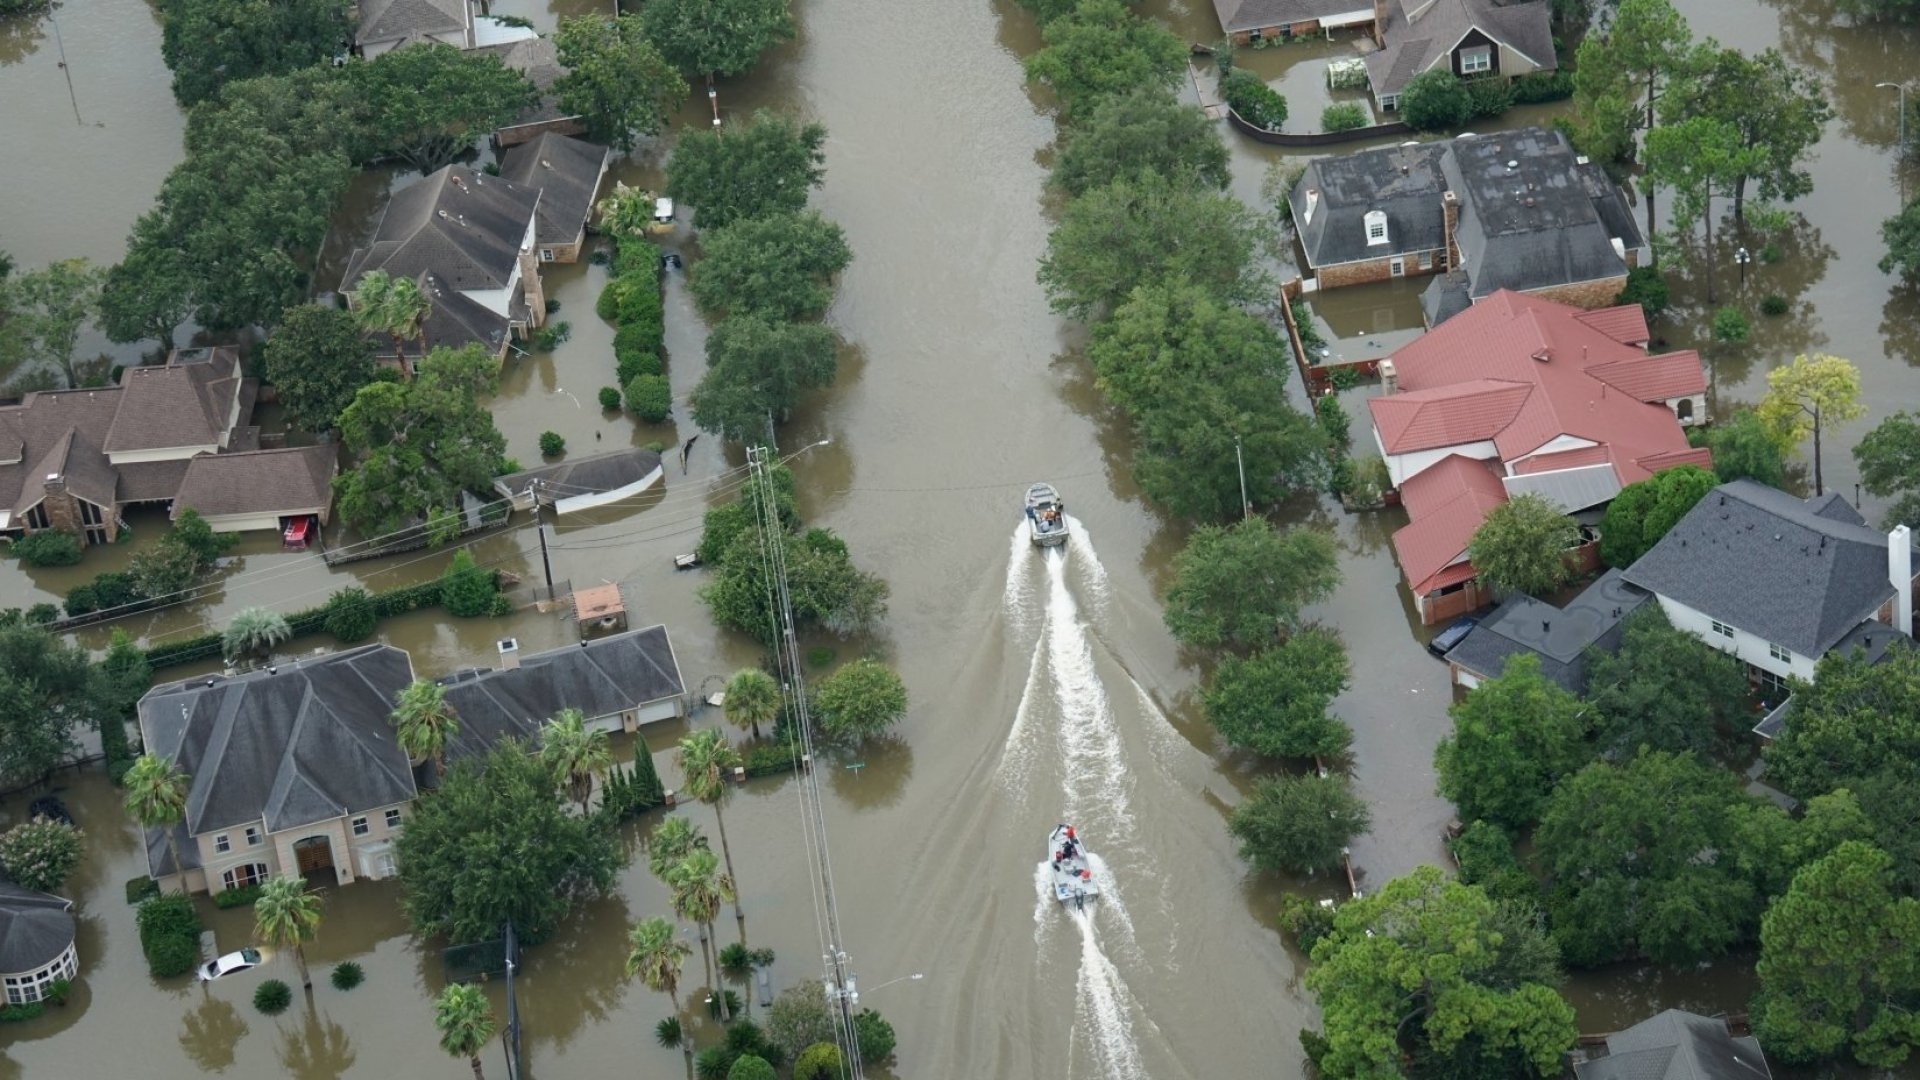 What You Need to Know About Protecting Your Business During a Natural Disaster